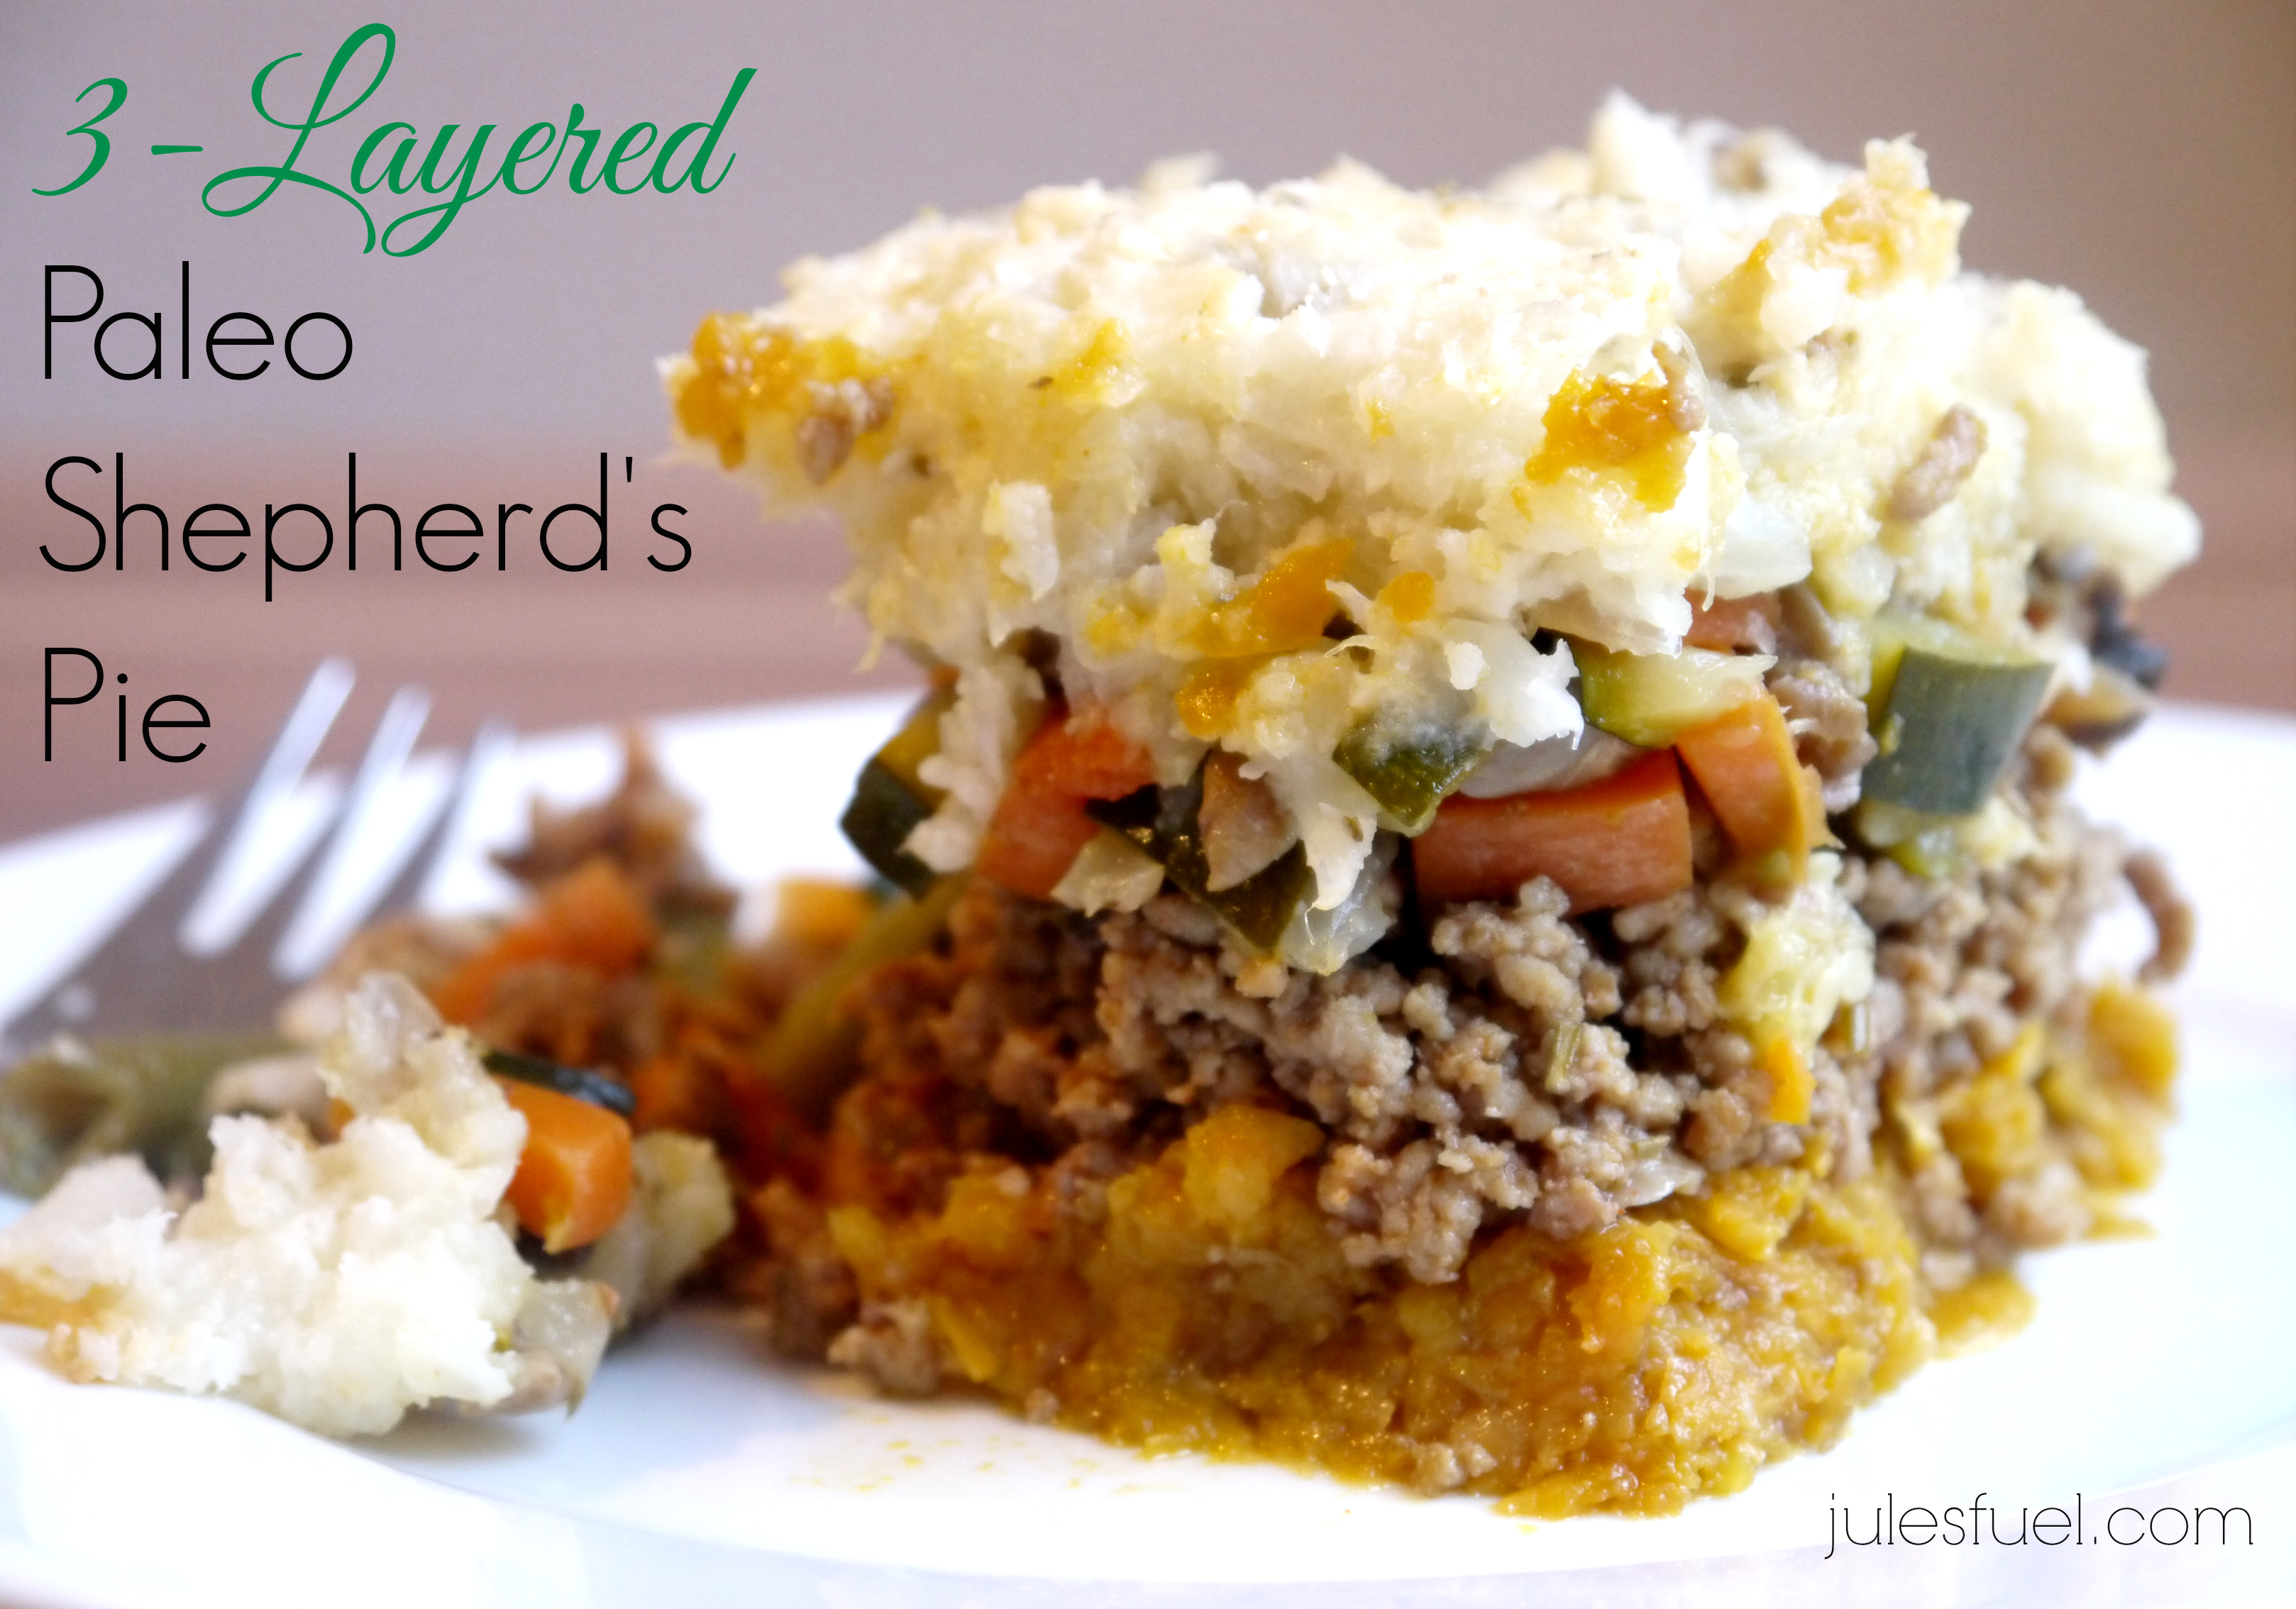 Layered Paleo Shepherd's Pie - Jules' Fuel